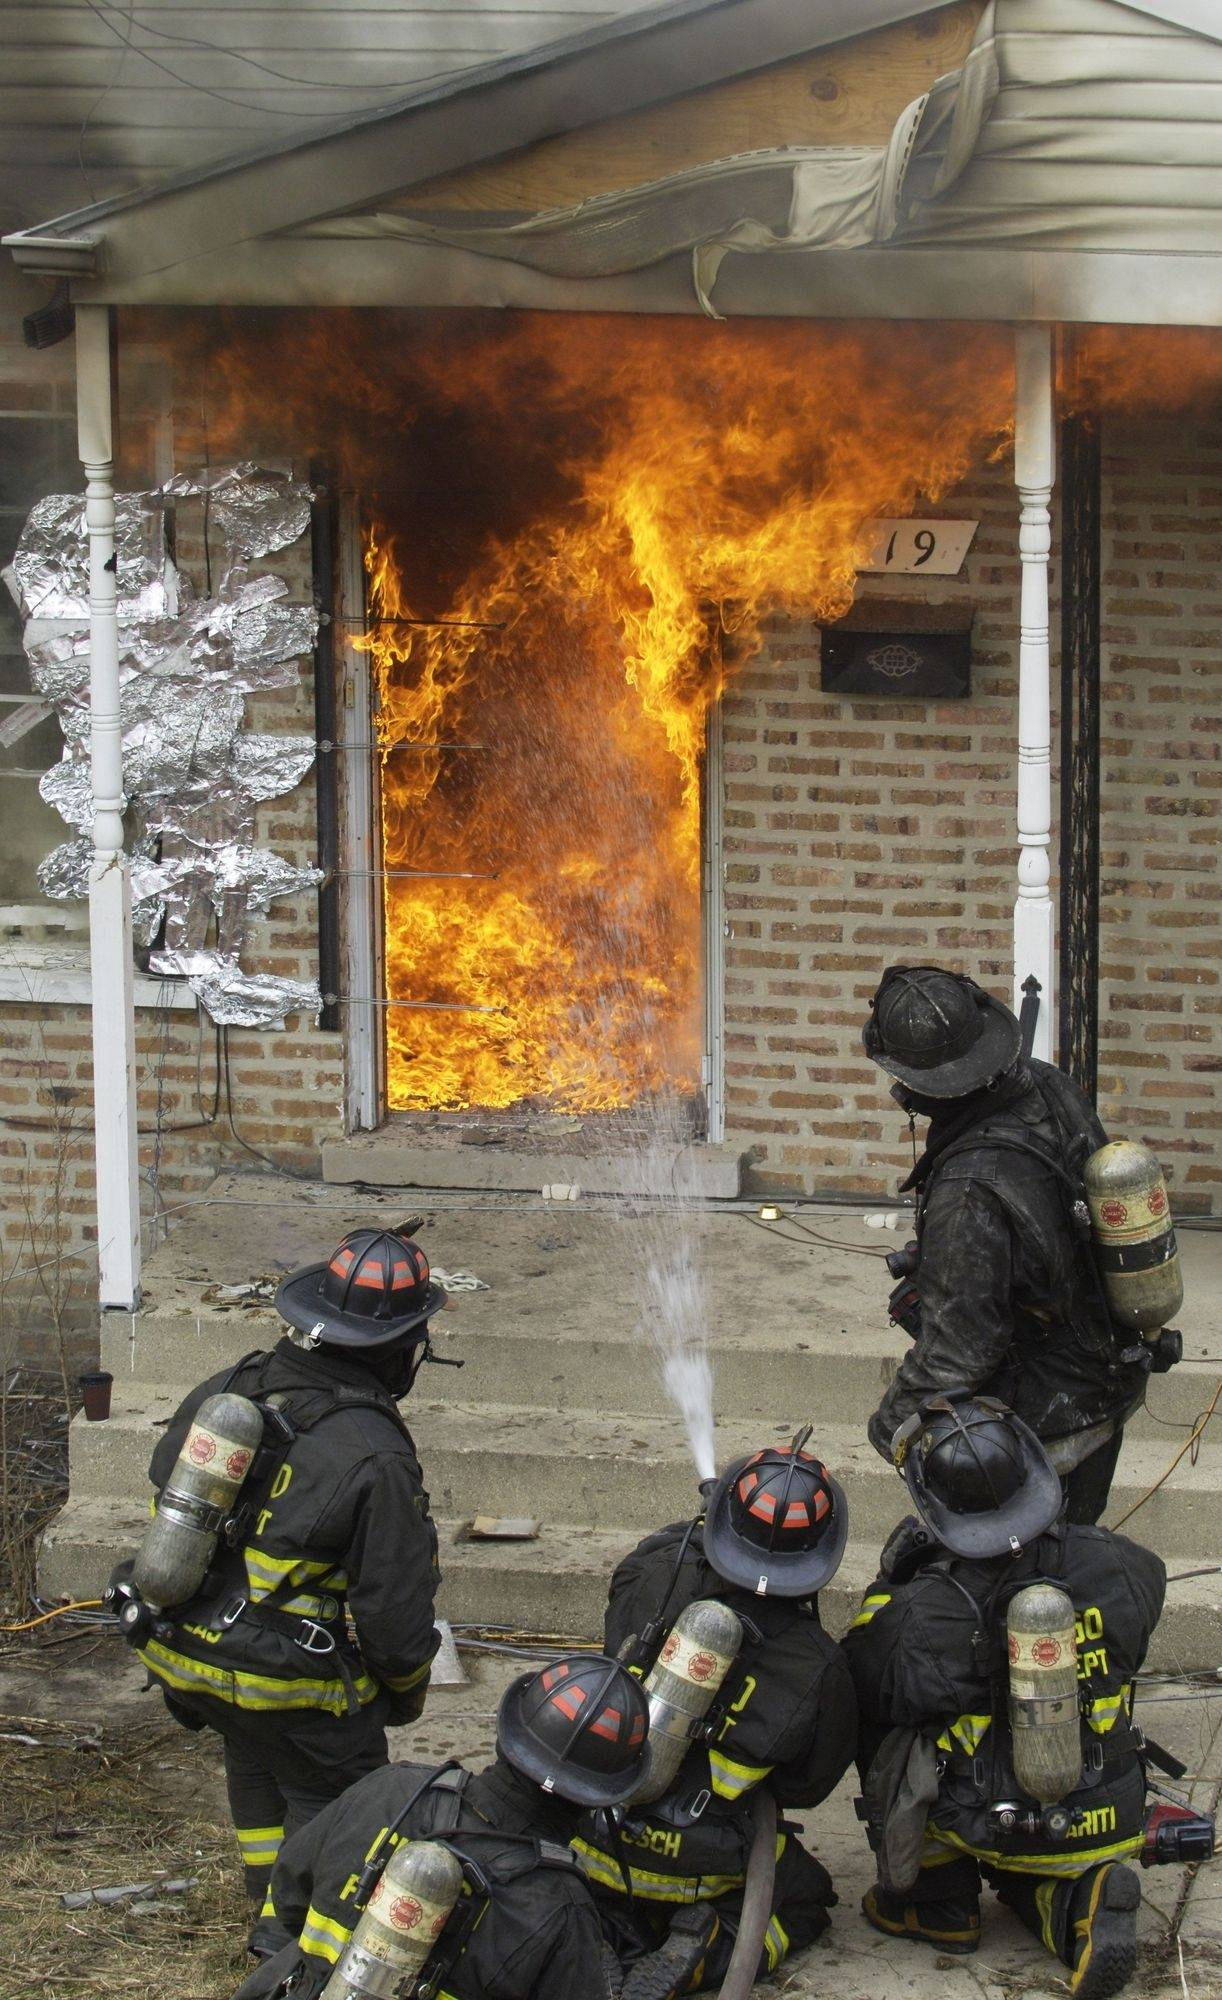 Firefighters extinguish a controlled burn in a vacant Bensenville townhouse Friday as part of a training exercise for both firefighters and fire investigators.